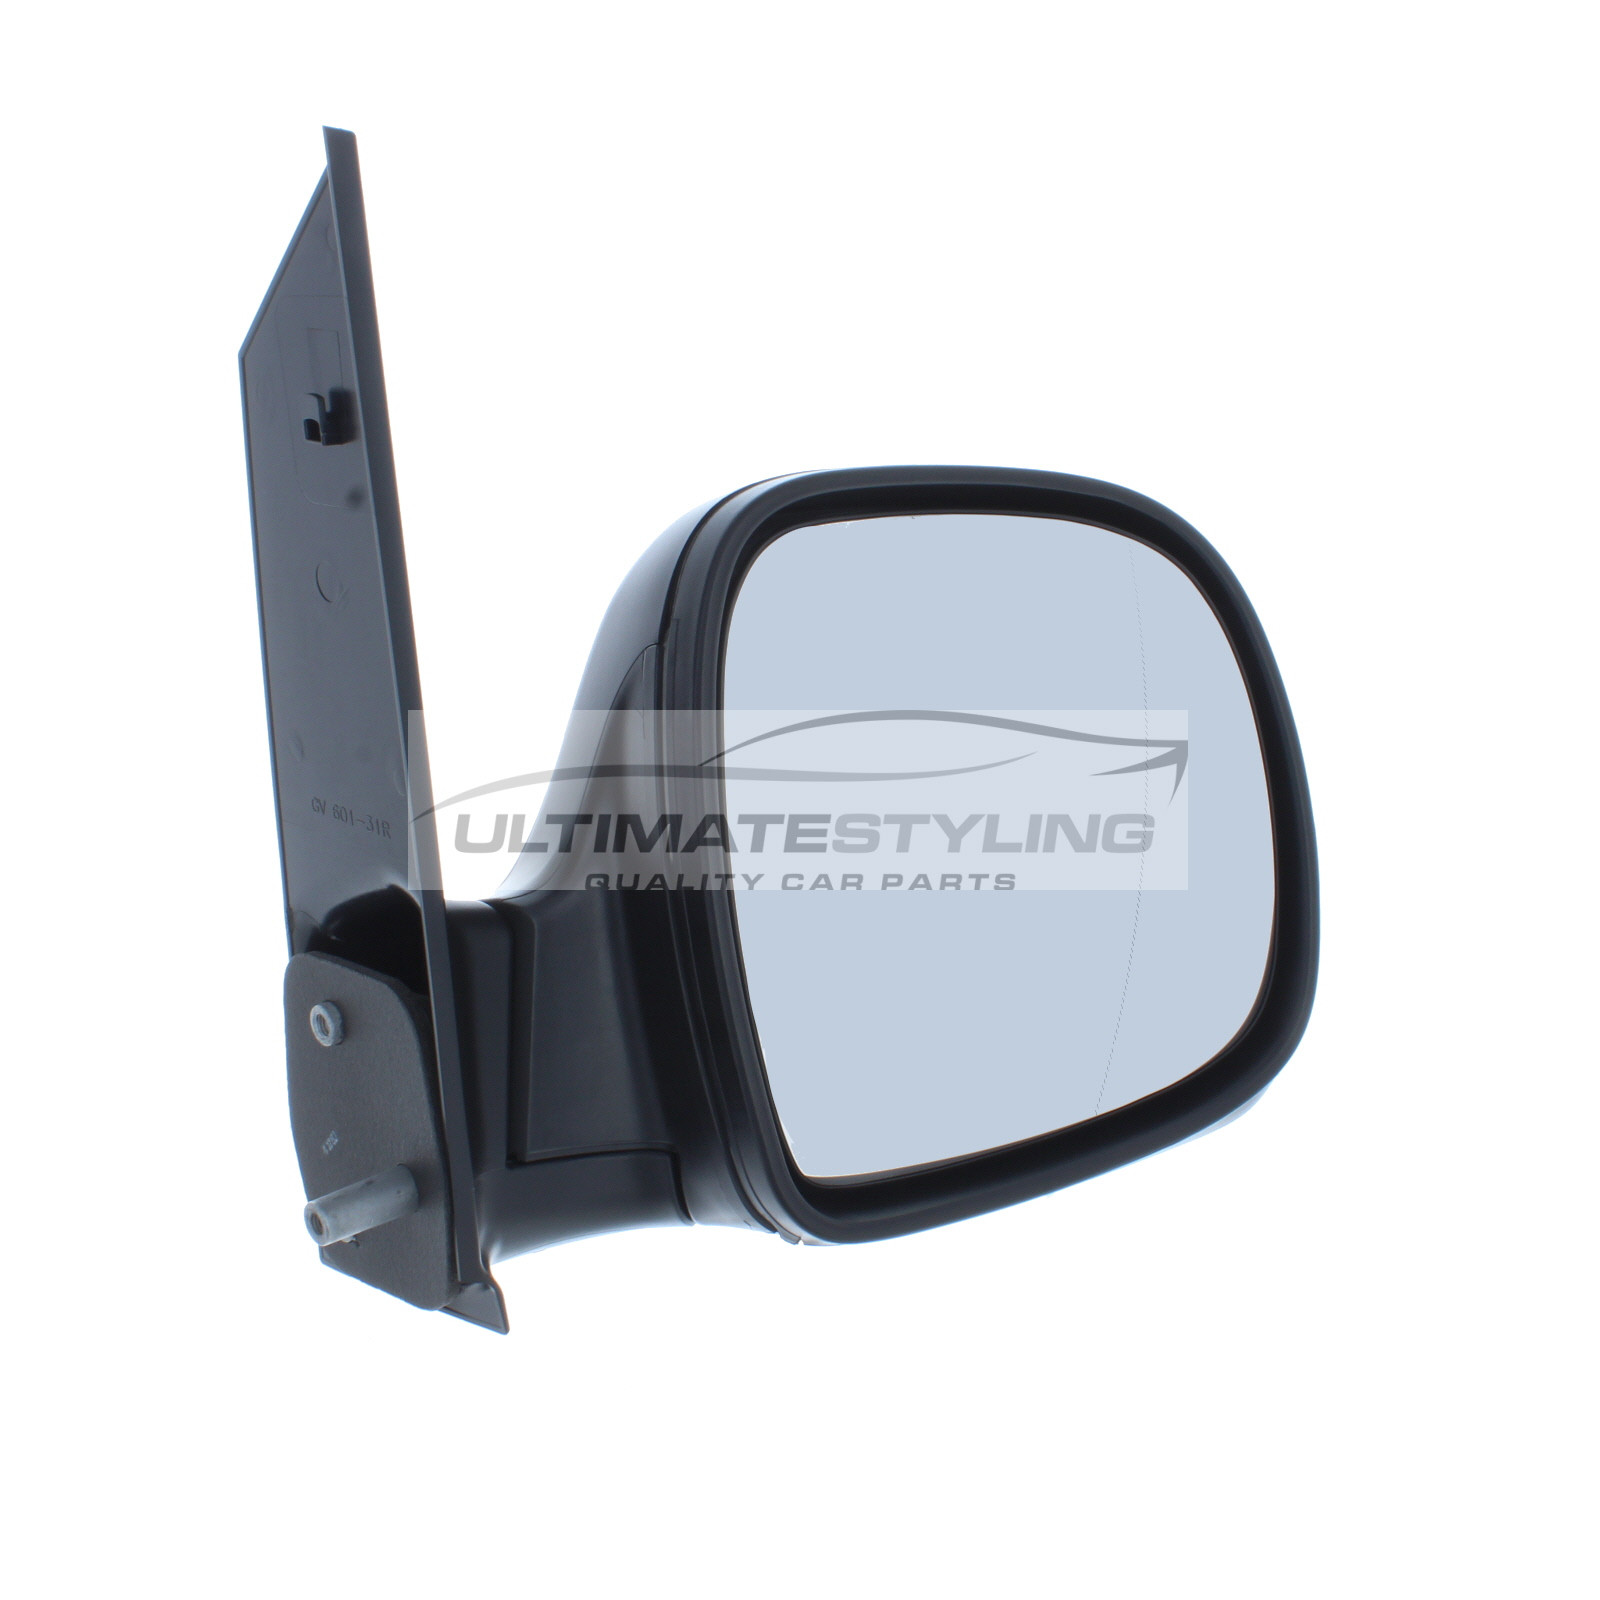 RH Textured For Drivers Side Right Hand Side Ultimate Styling Aftermarket Replacement Wing Mirror Cover Cap Colour Of Cover Black